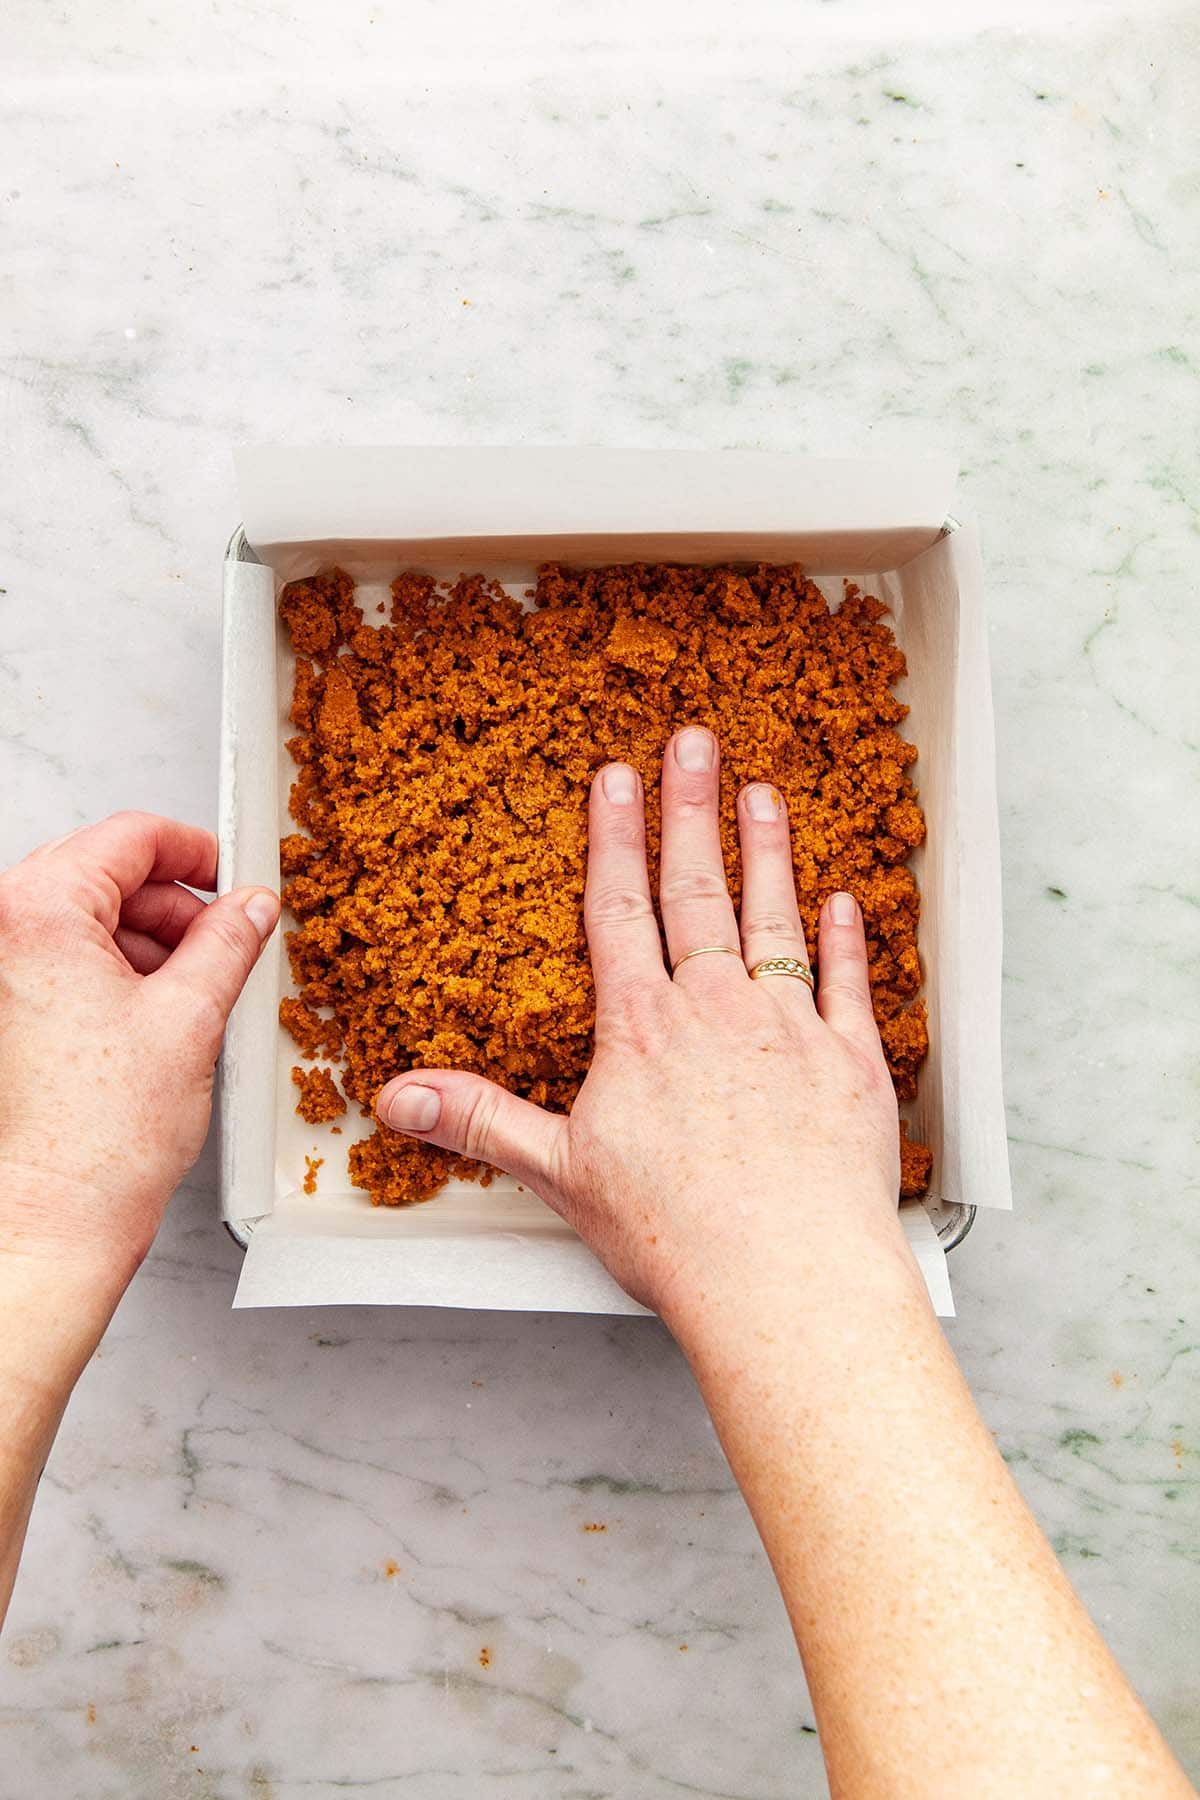 A hand beginning to press graham crumbs into a square pan.